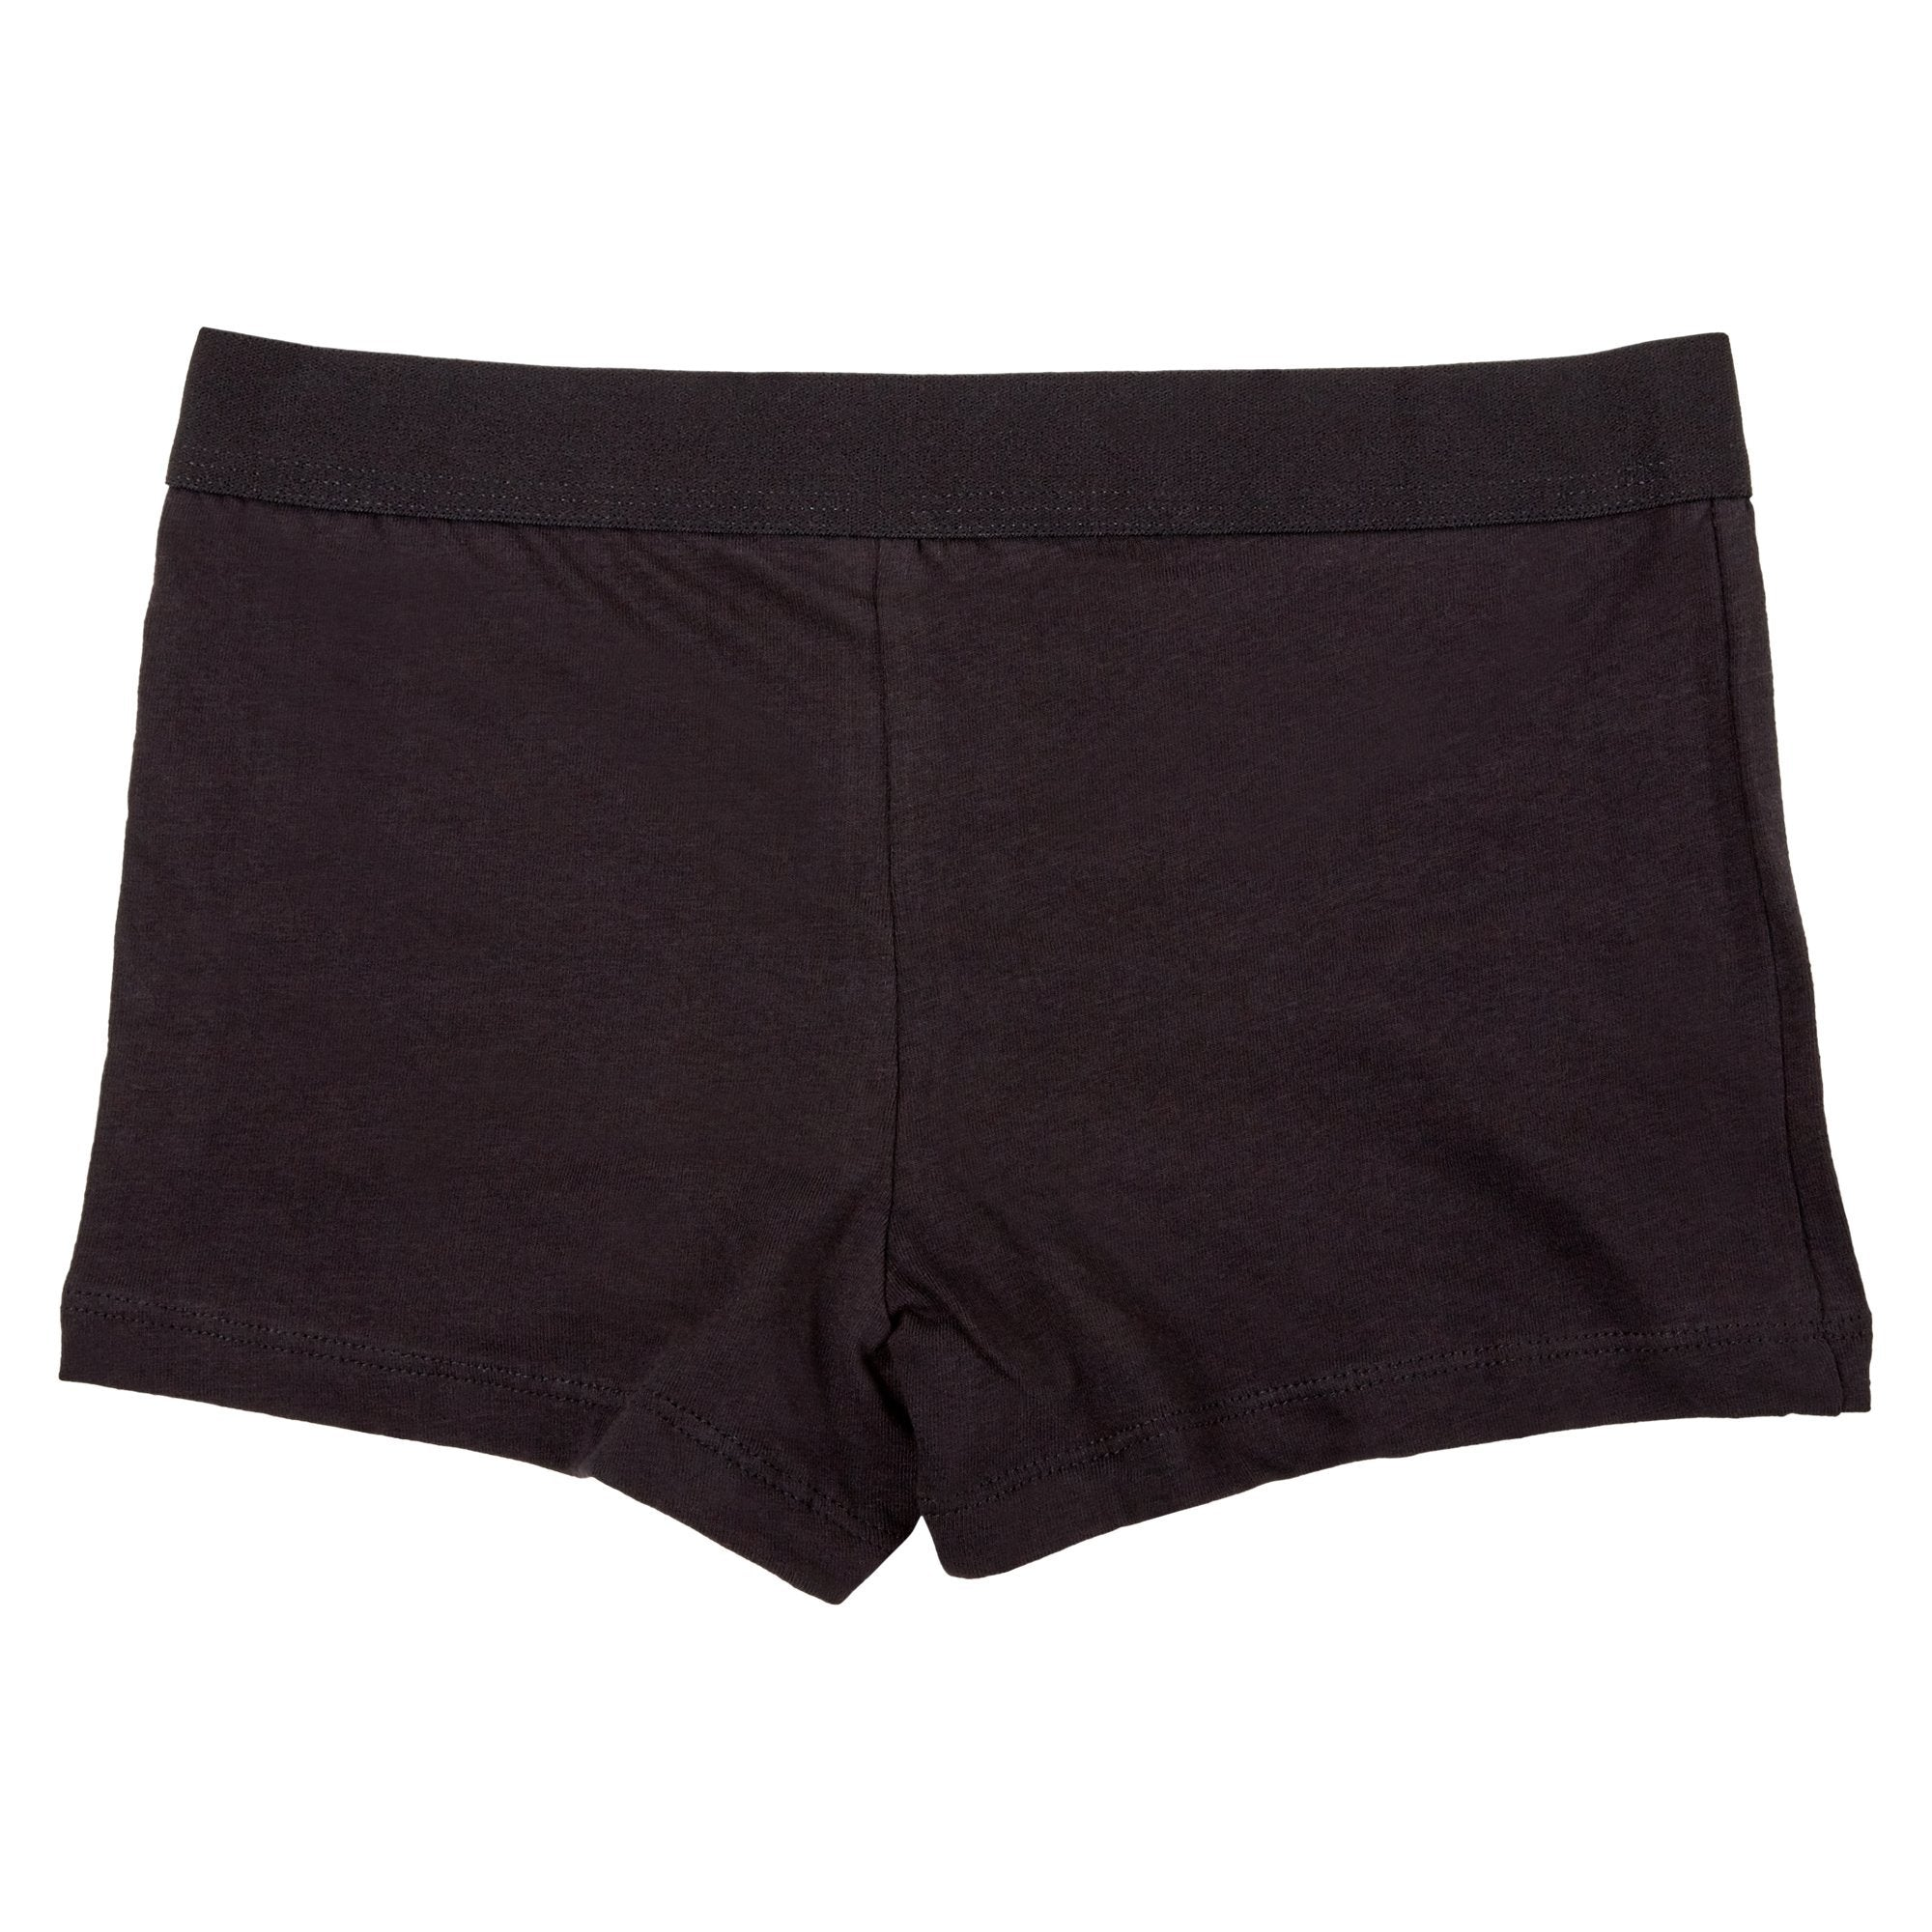 Rio Girl's 2 Pack Netball Knickers Shortie - Black Apparel Rio  (2019304800315)